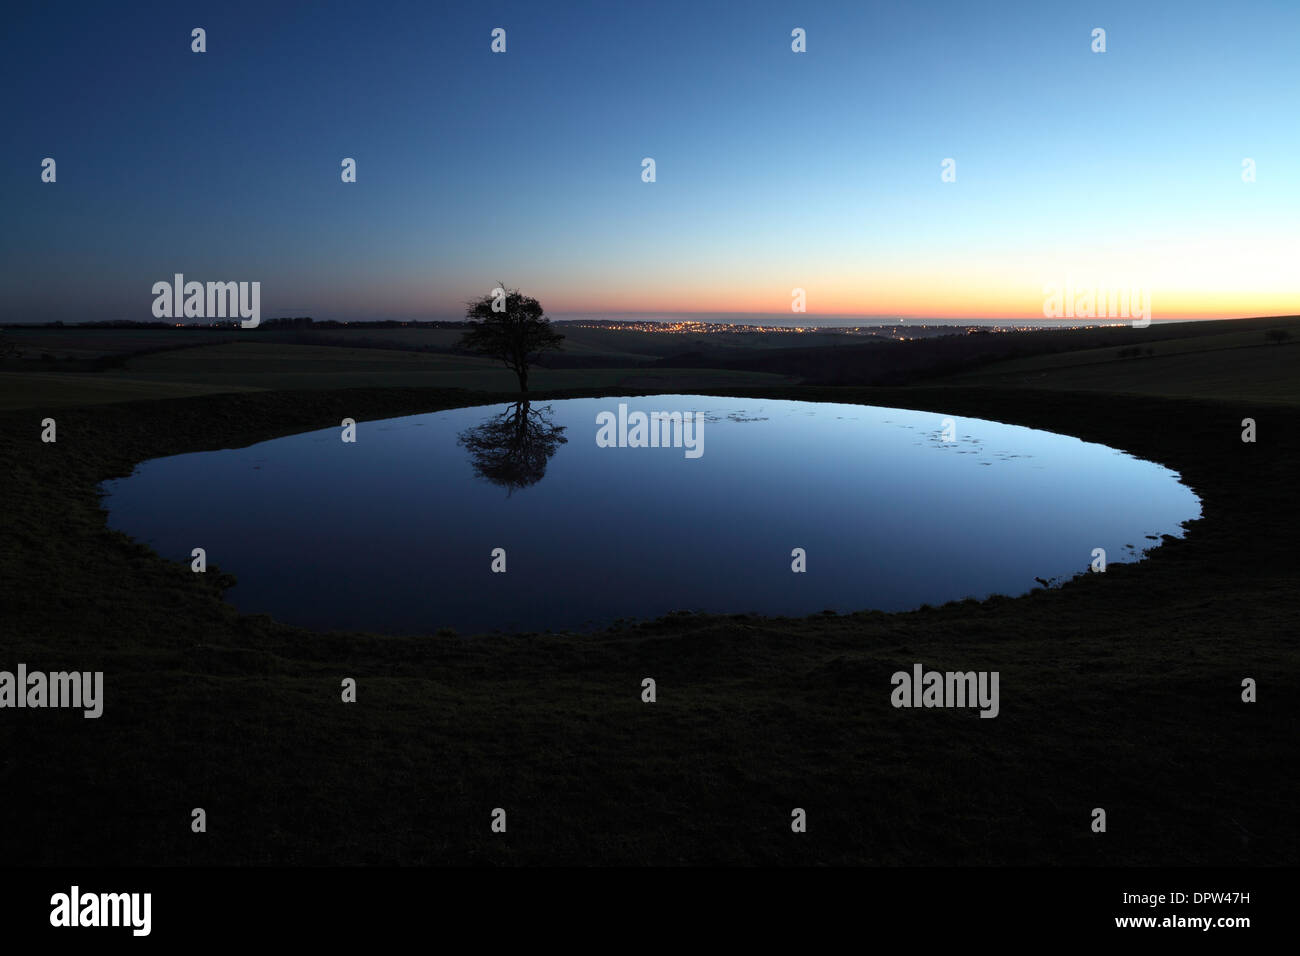 Dew pond on the South Downs at dusk. The sea and the lights of Brighton are just visible in the background. Stock Photo